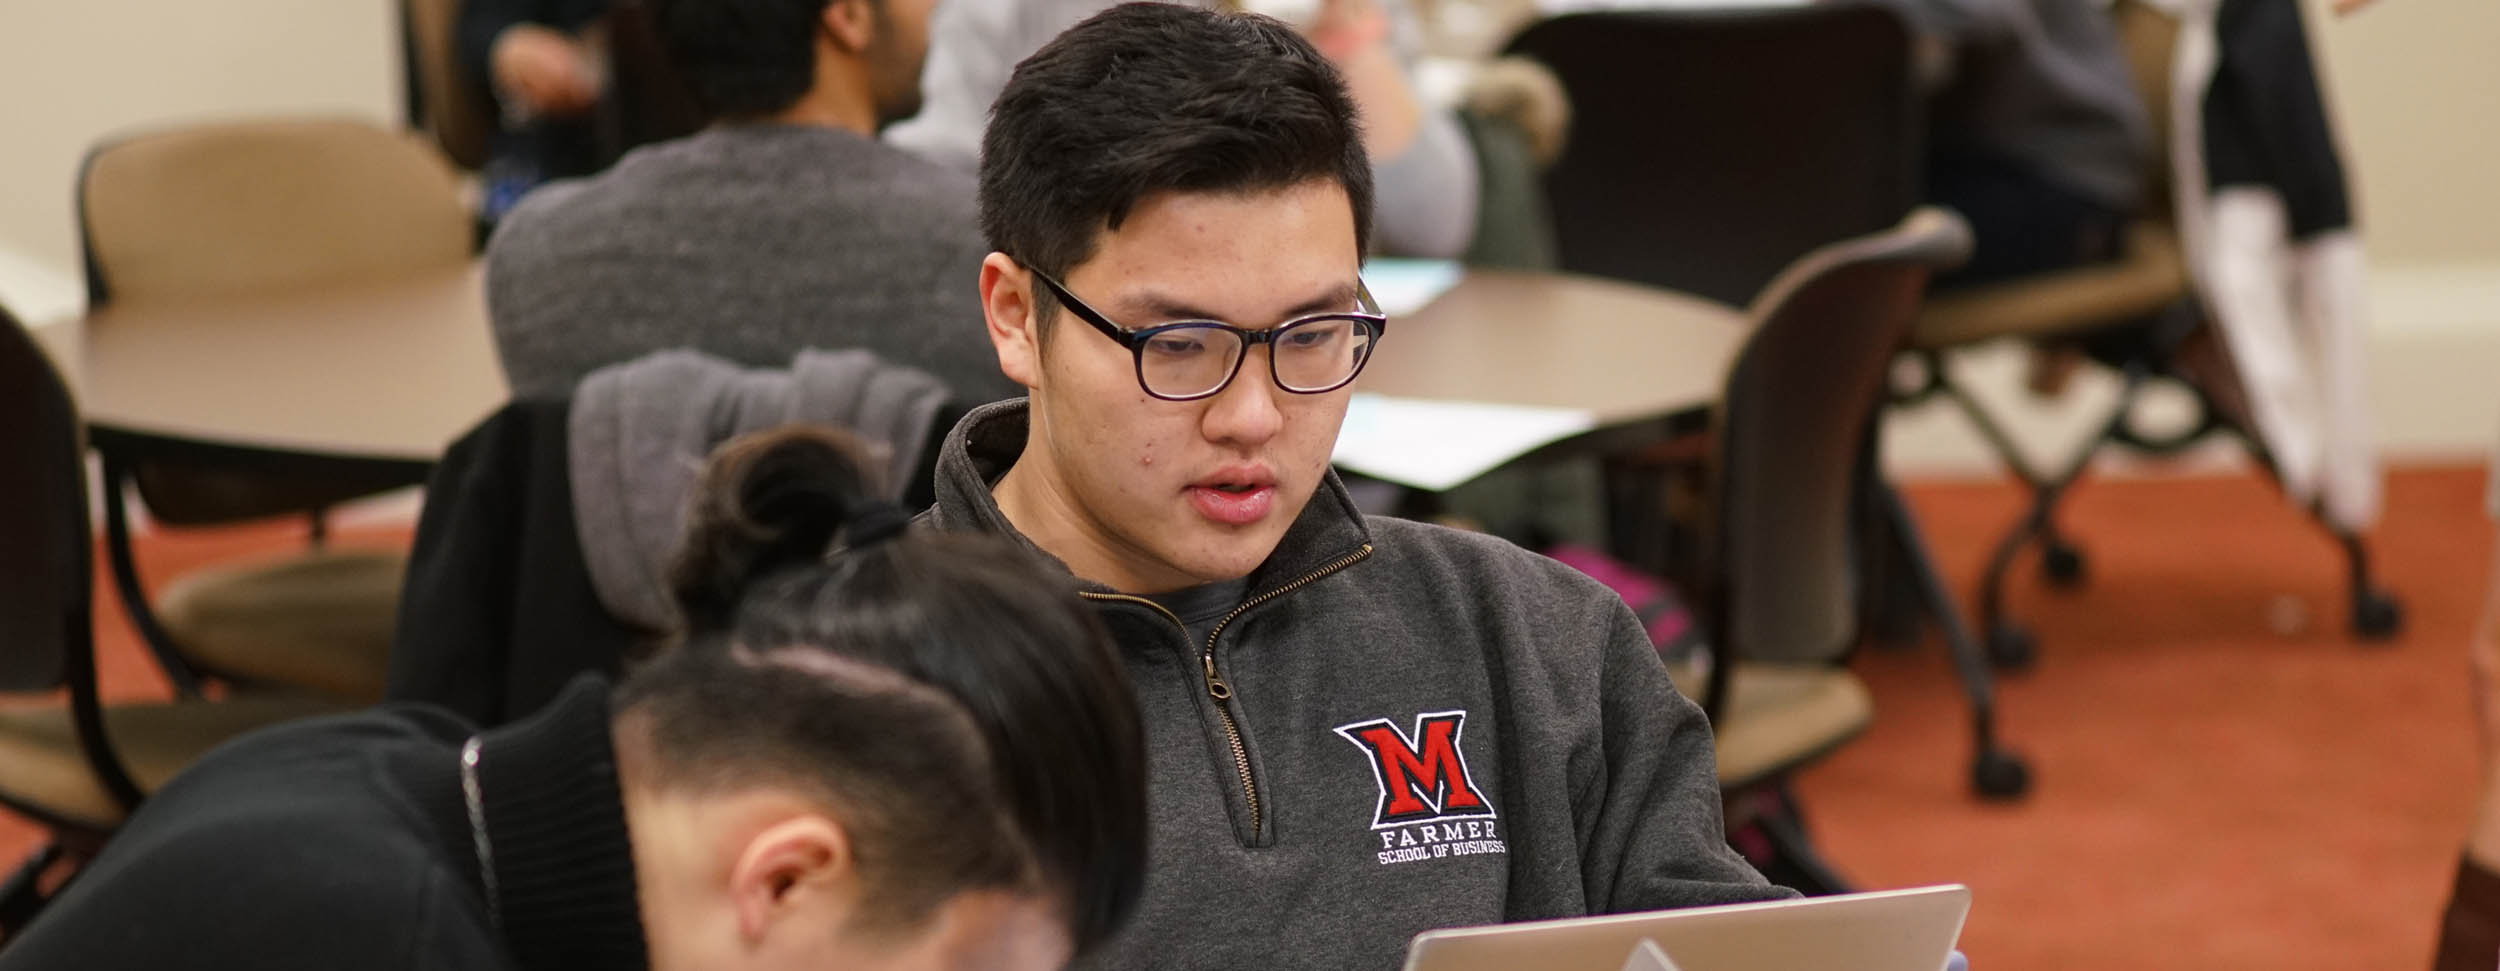 Student looks at his laptop during class